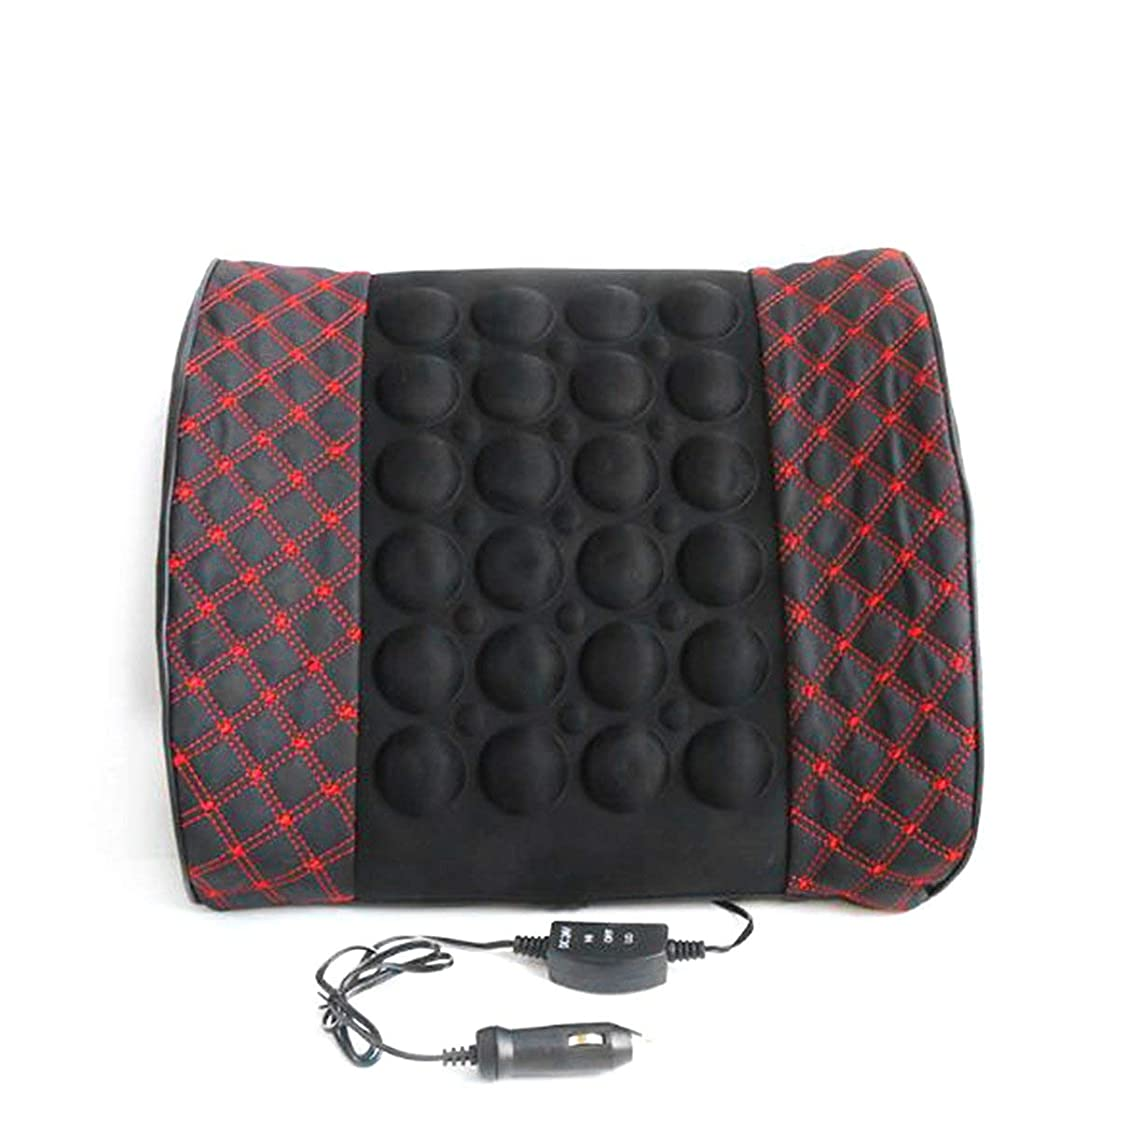 ウェイドめまい経度Microfiber Leather Car Back Support Lumbar Posture Support Breathable Electrical Massage Cushion Health Care Tool